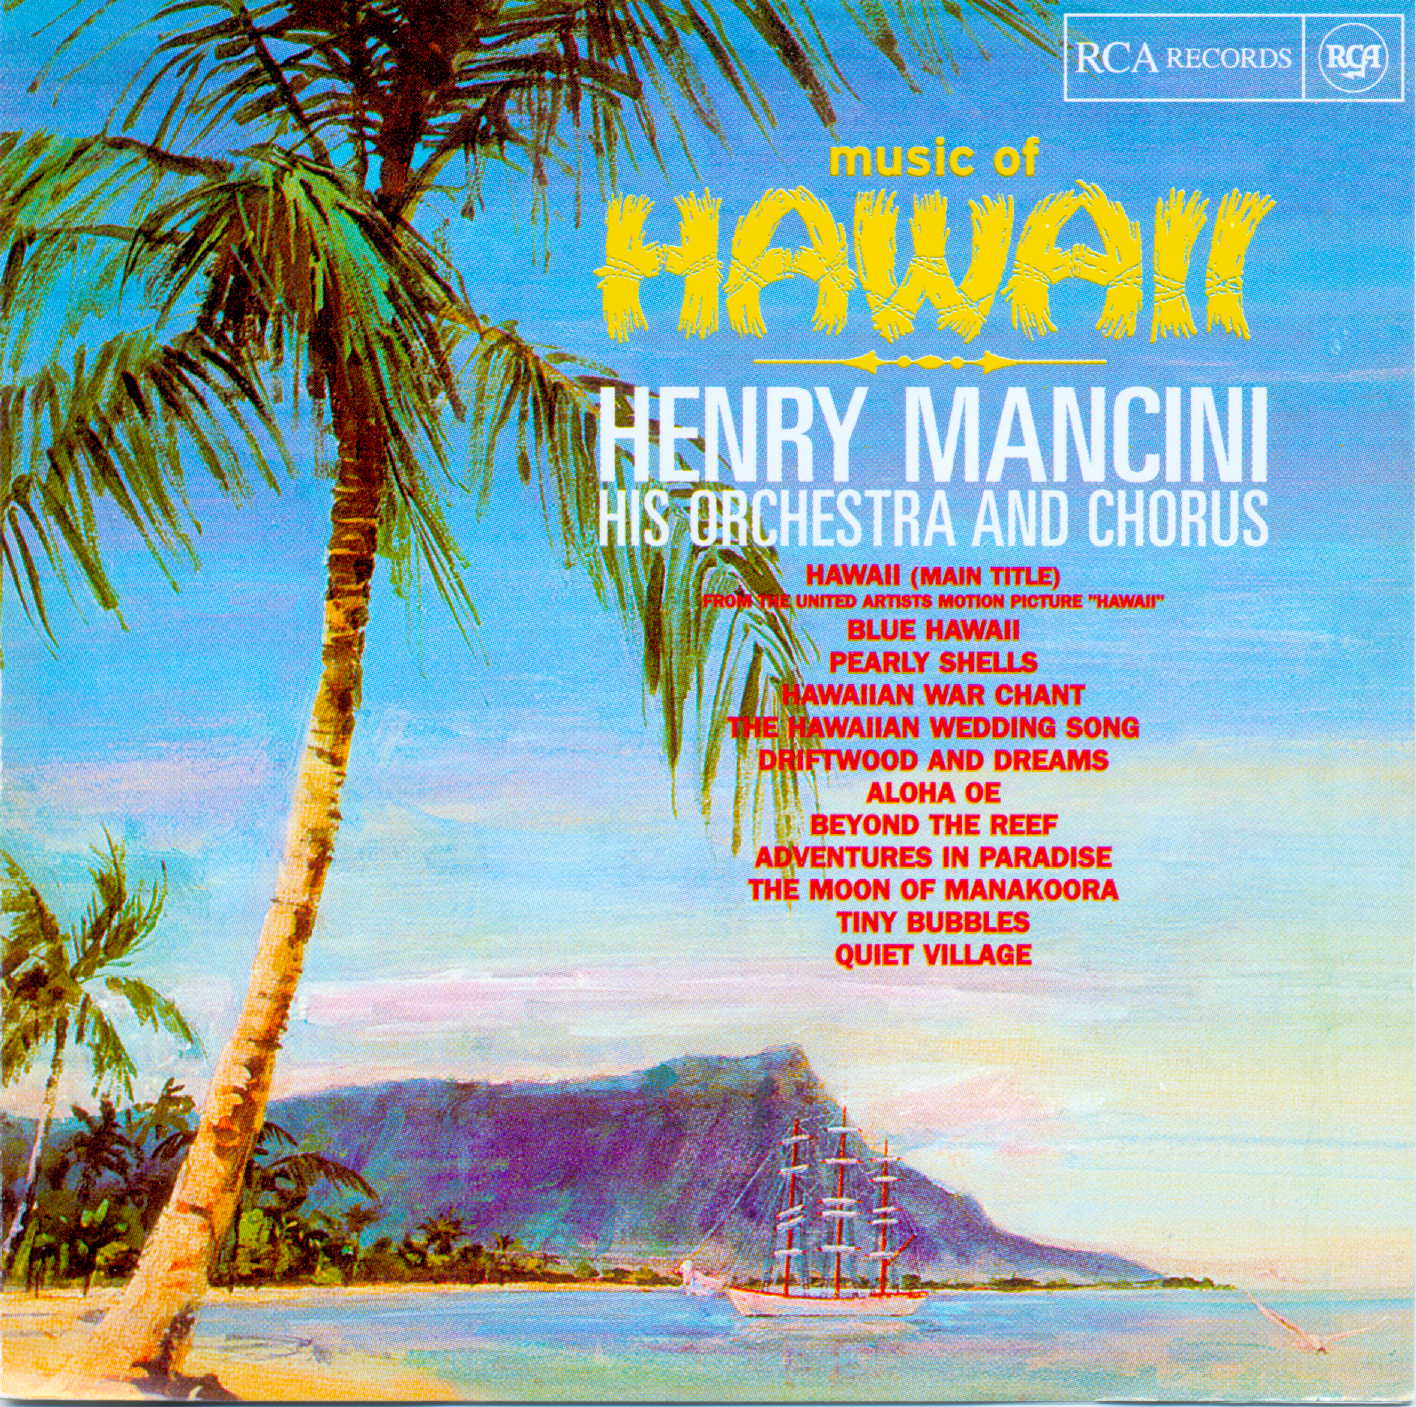 Henry Mancini - Music of Hawaii   1966  (2002)